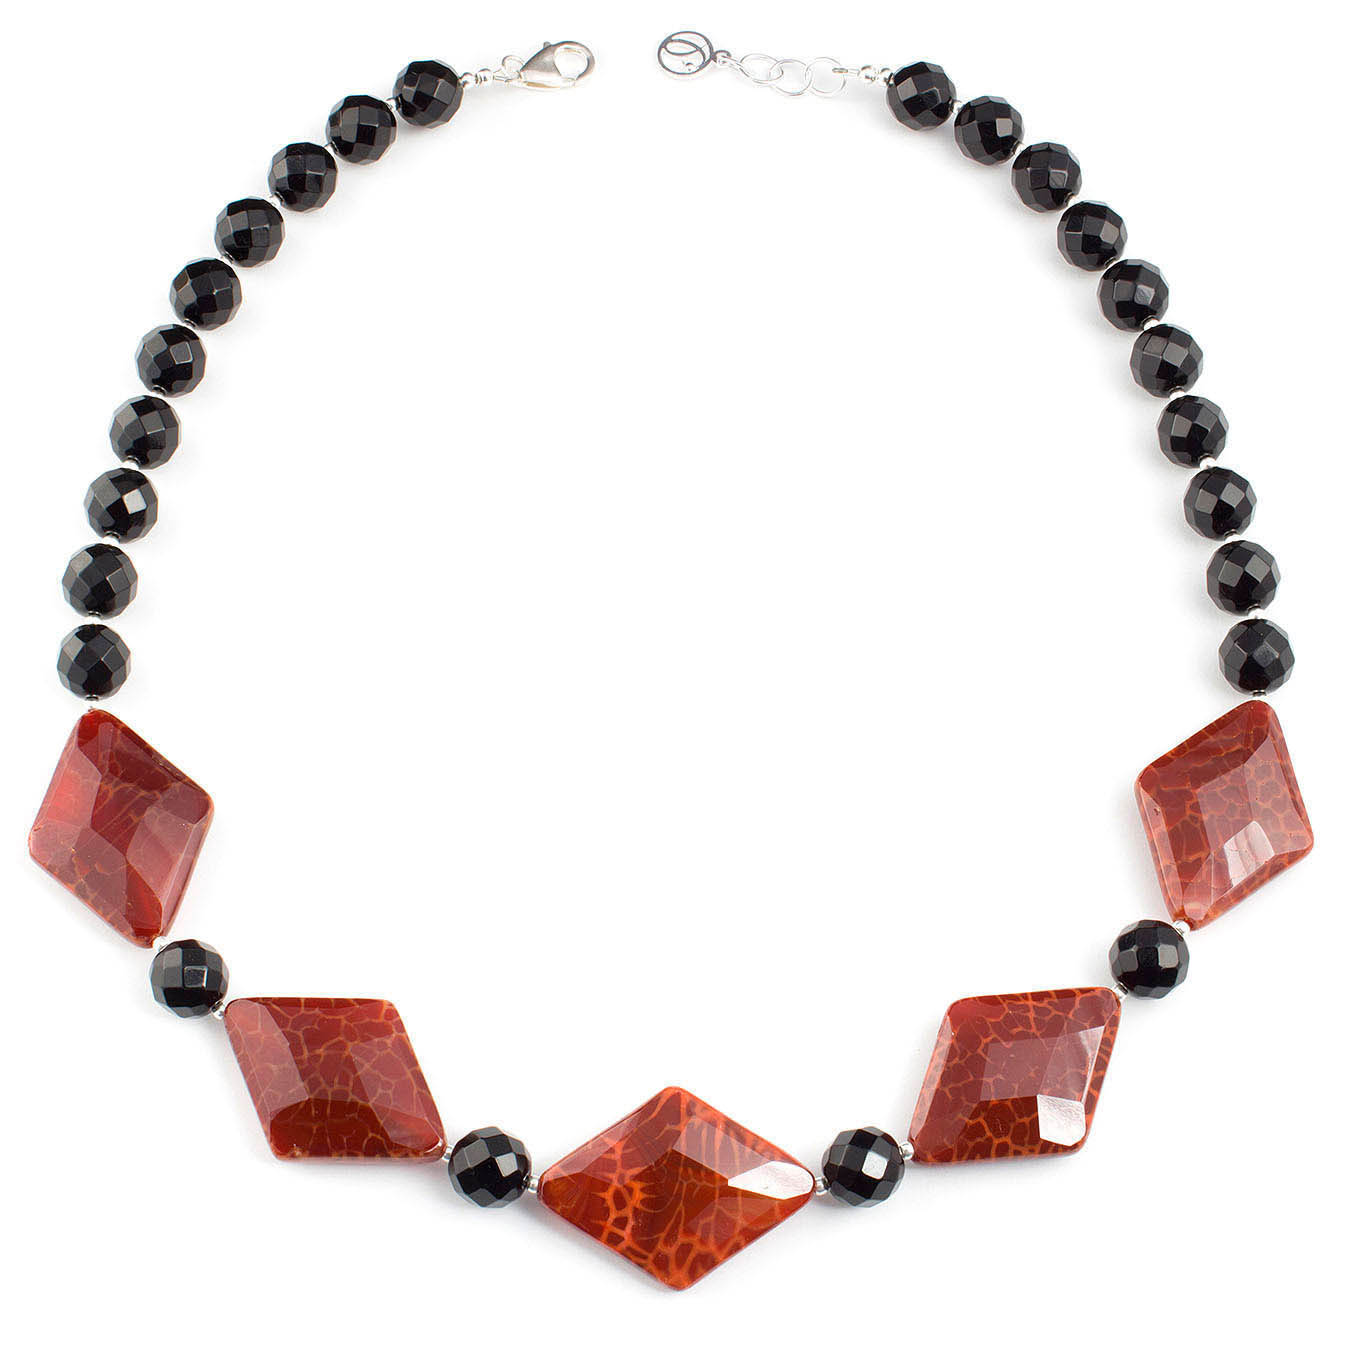 Artisan collar jewelry necklace made of red fire agate gemstone